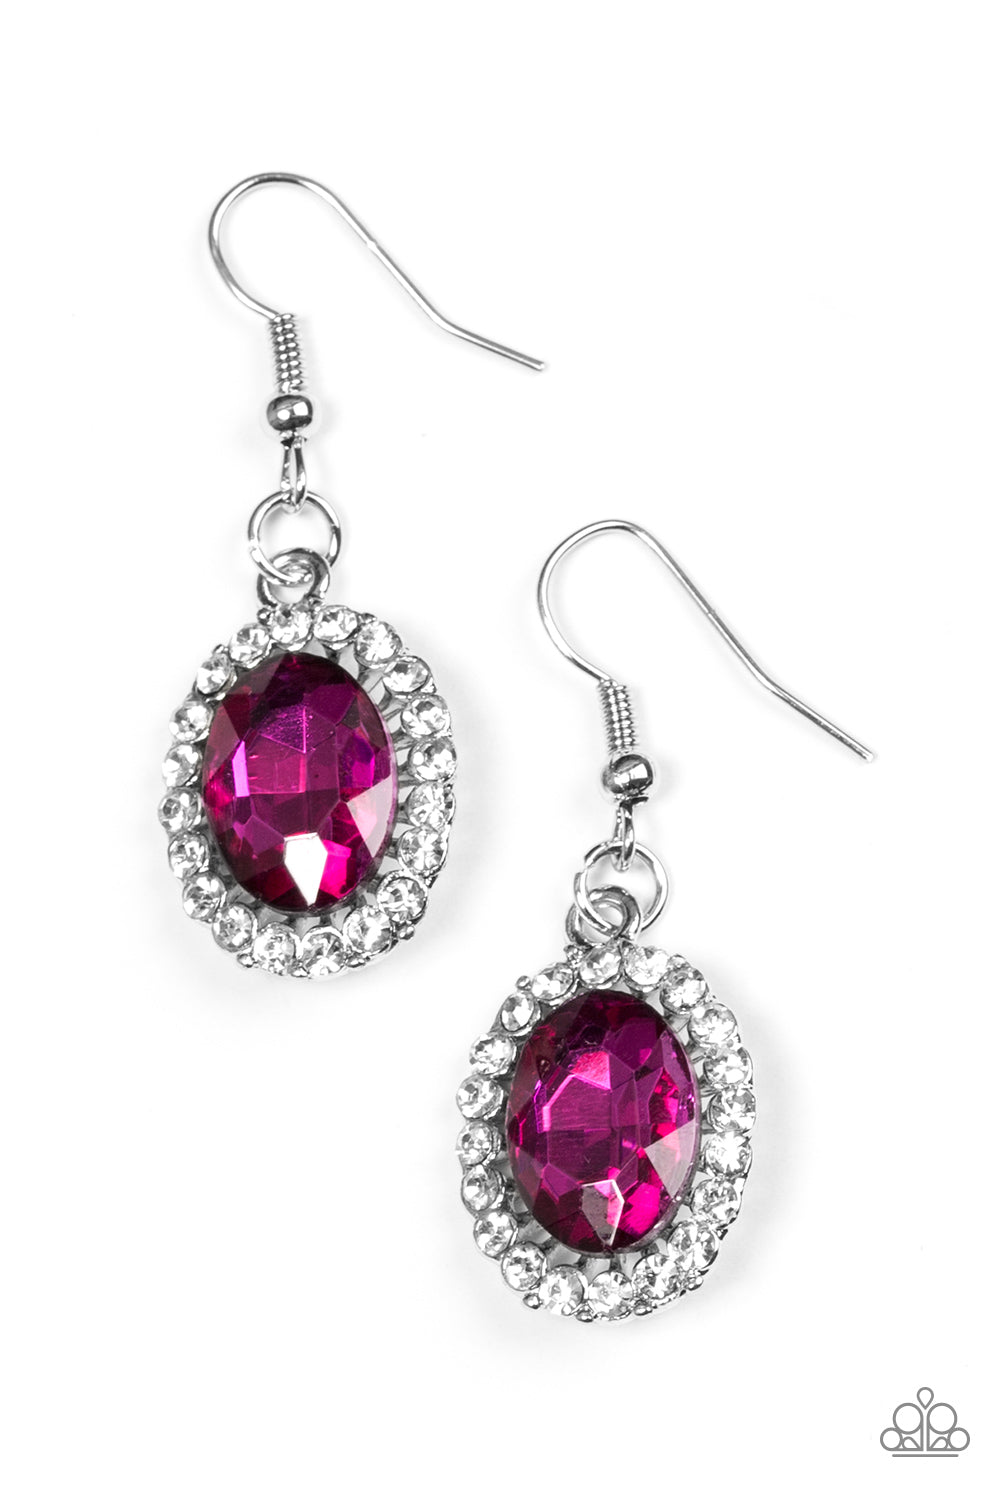 five-dollar-jewelry-the-fame-of-the-game-pink-earrings-paparazzi-accessories